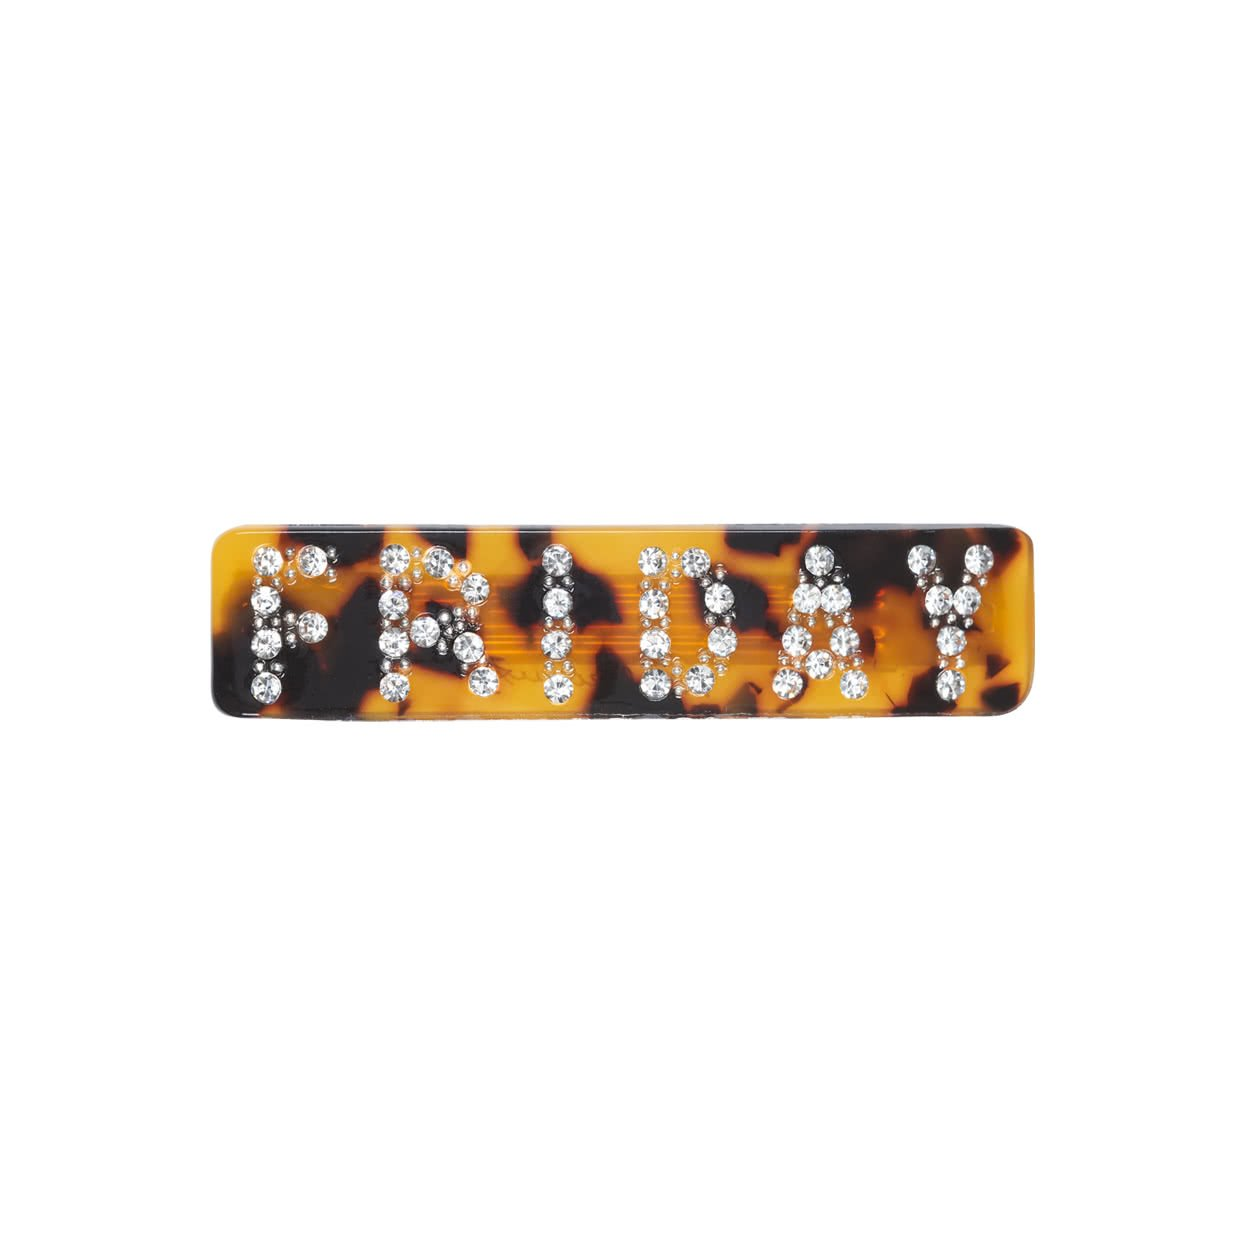 Image of Hair Barrette with crystals - Tortoise / Friday